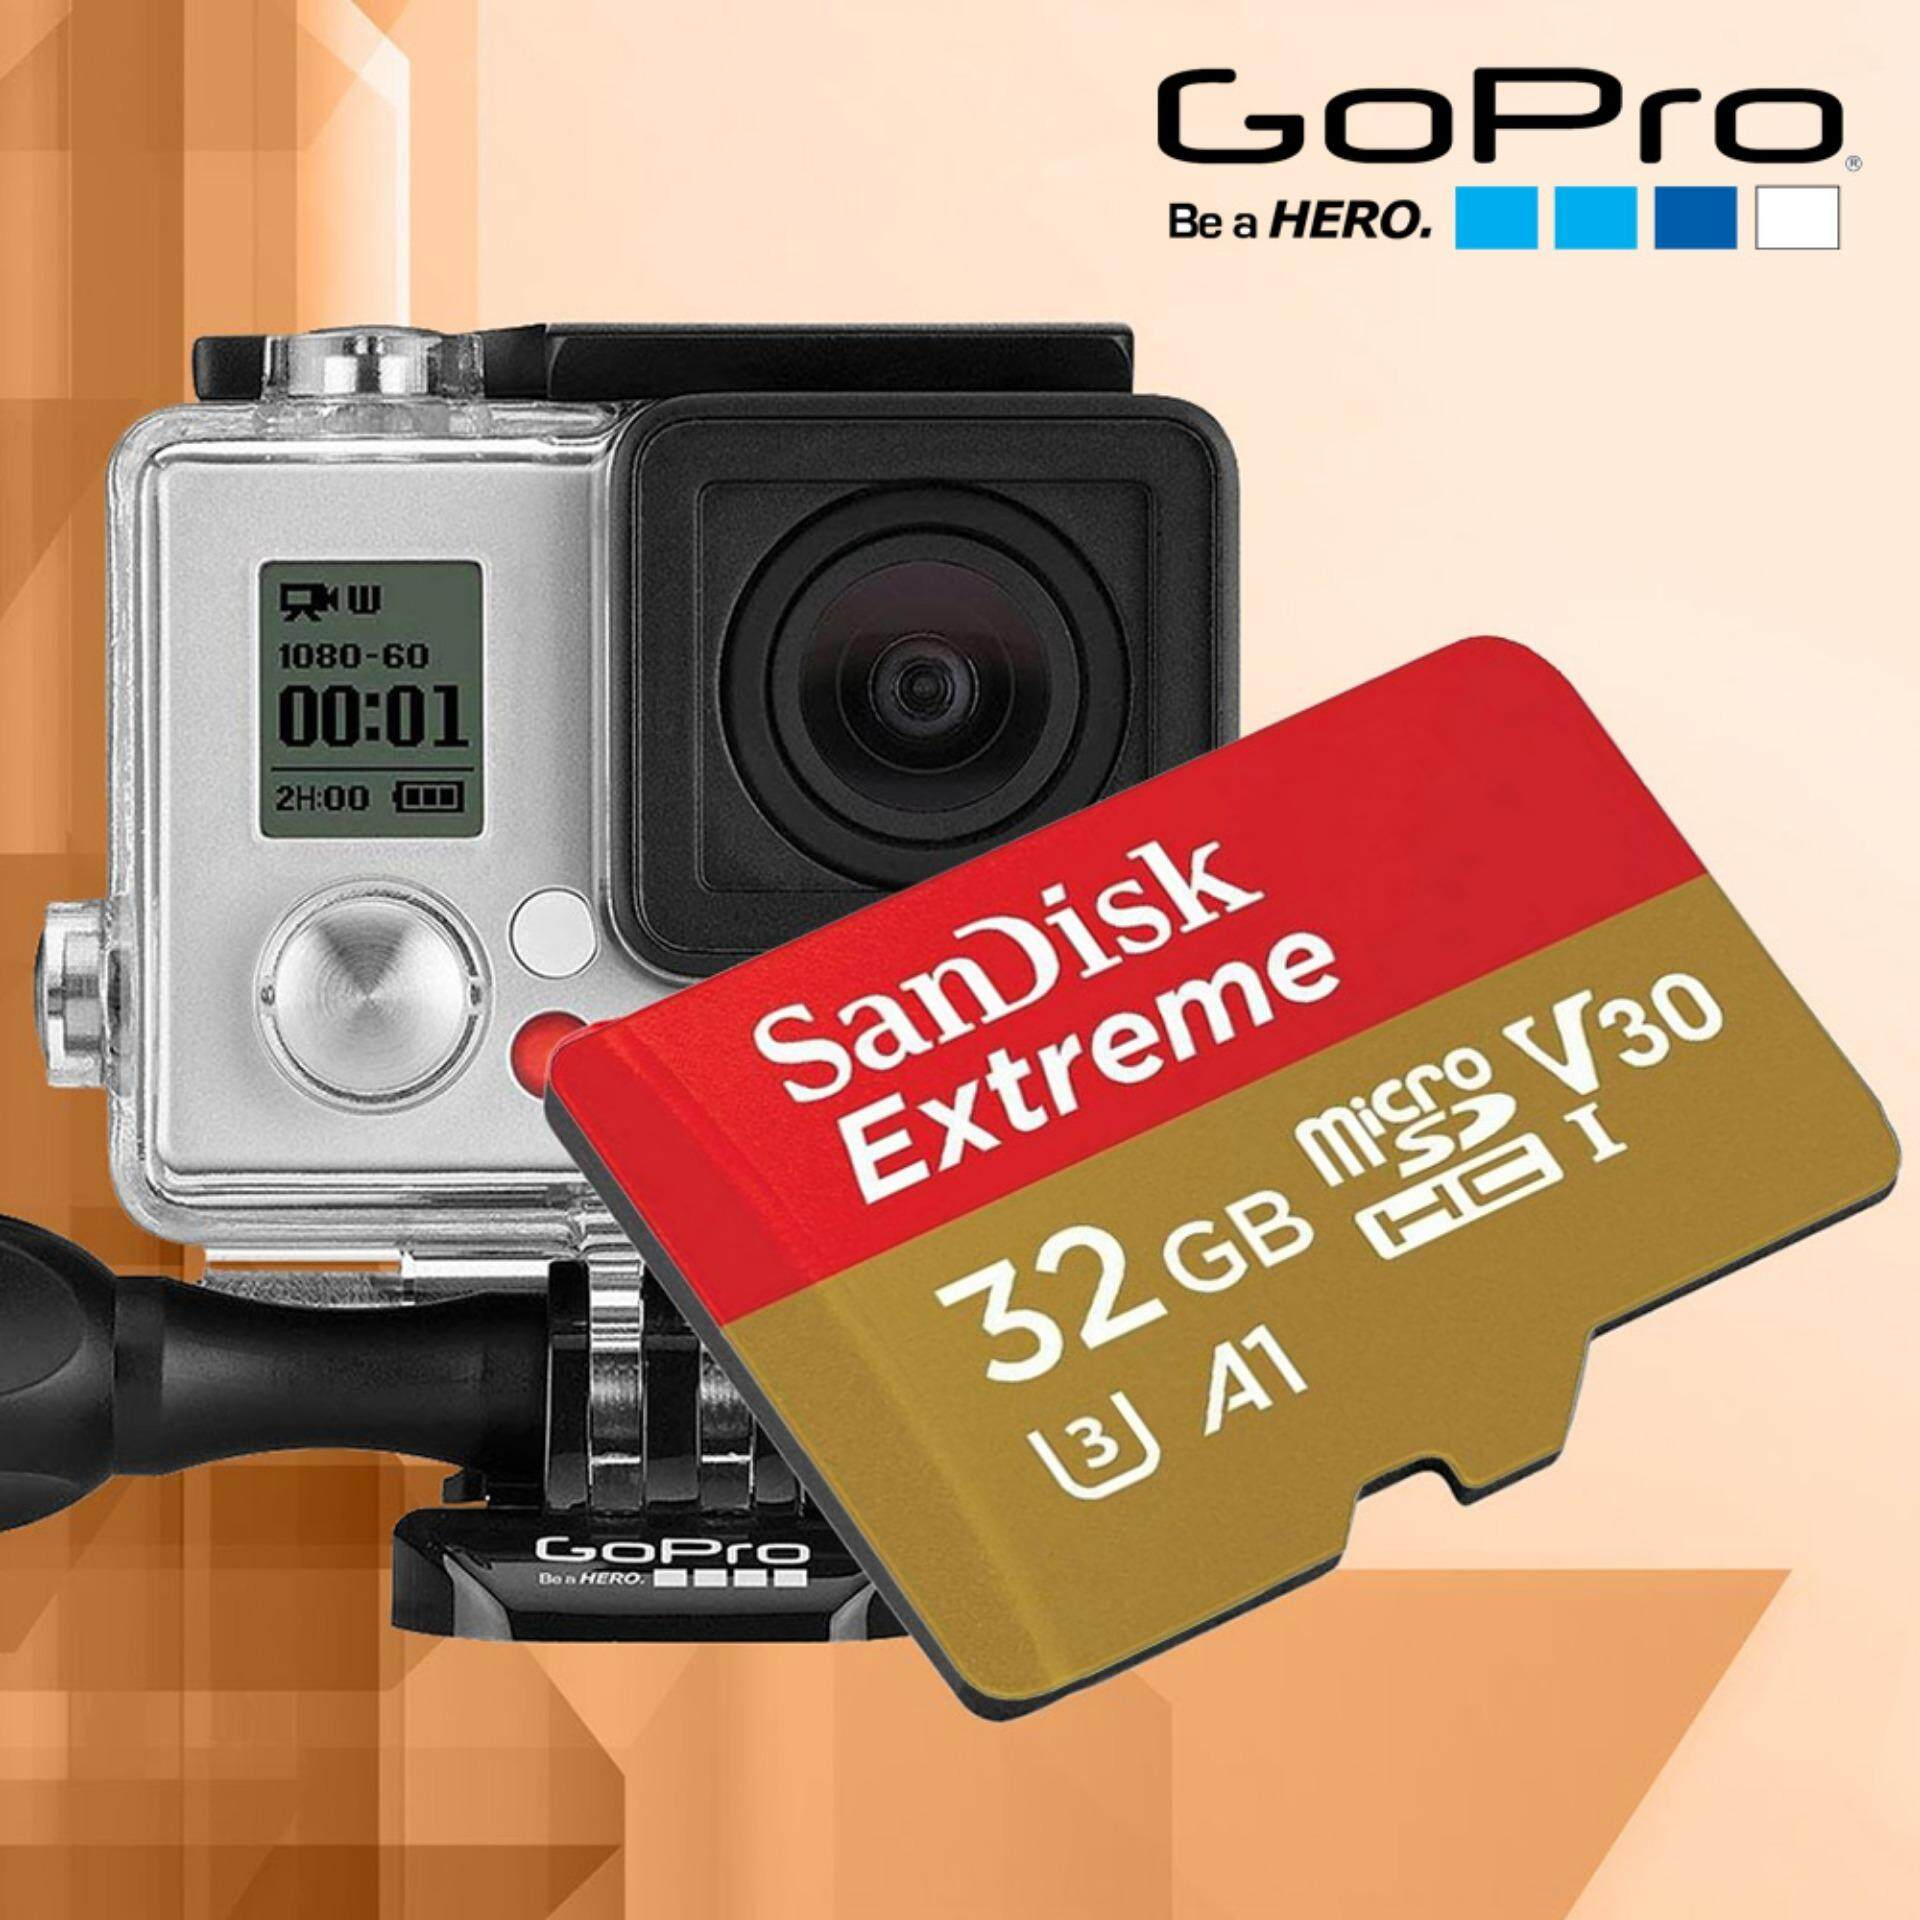 Fitur Sandisk Extreme 32gb 100mb S Micro Sd Memory Card A1 Class 10 Microsdhc Uhs I 3 4k 90mb Detail Gambar V30 U3 Ultra Hd Uhd With Adapter For Action Camera